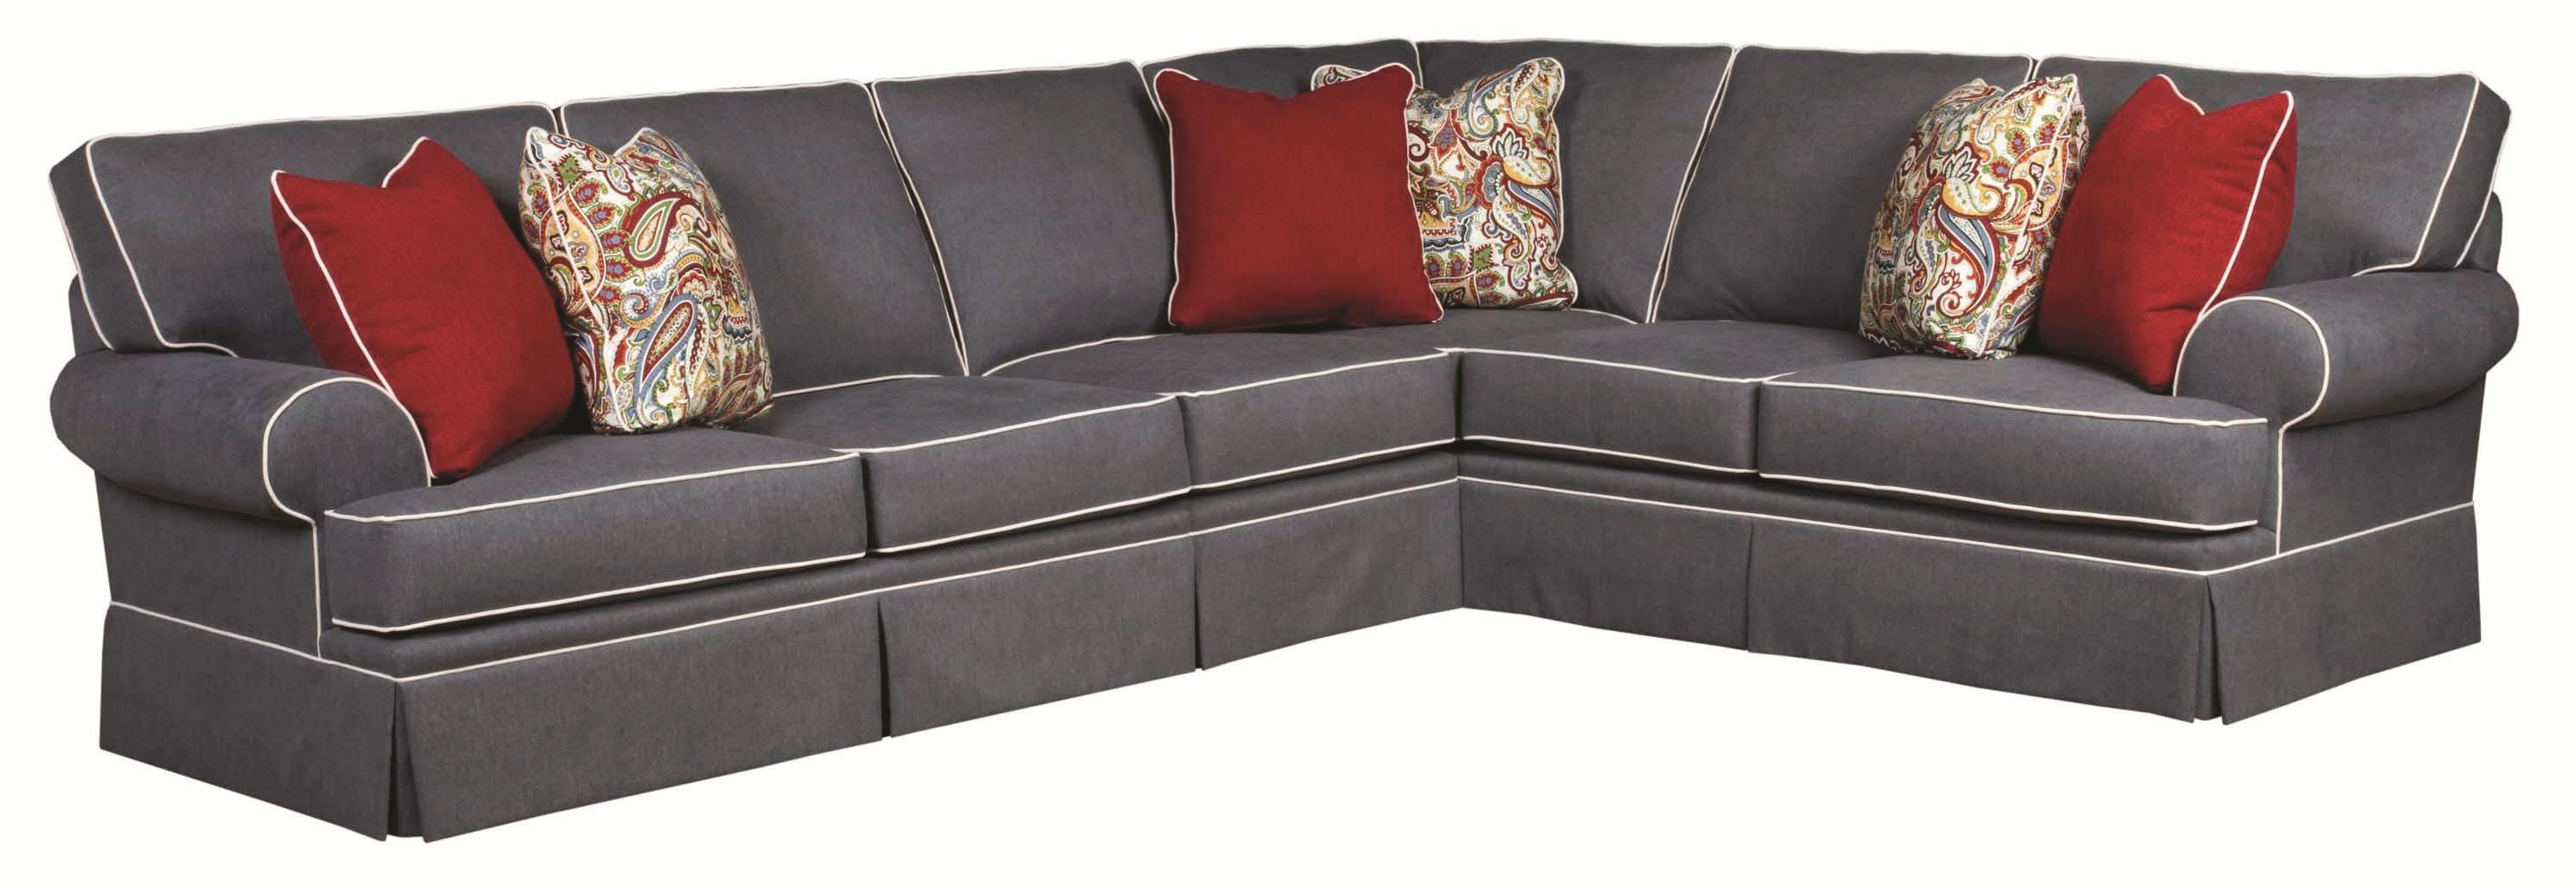 Broyhill Furniture Emily Traditional 3 Piece Sectional Sofa With Intended For Broyhill Sectional Sofa (View 4 of 15)